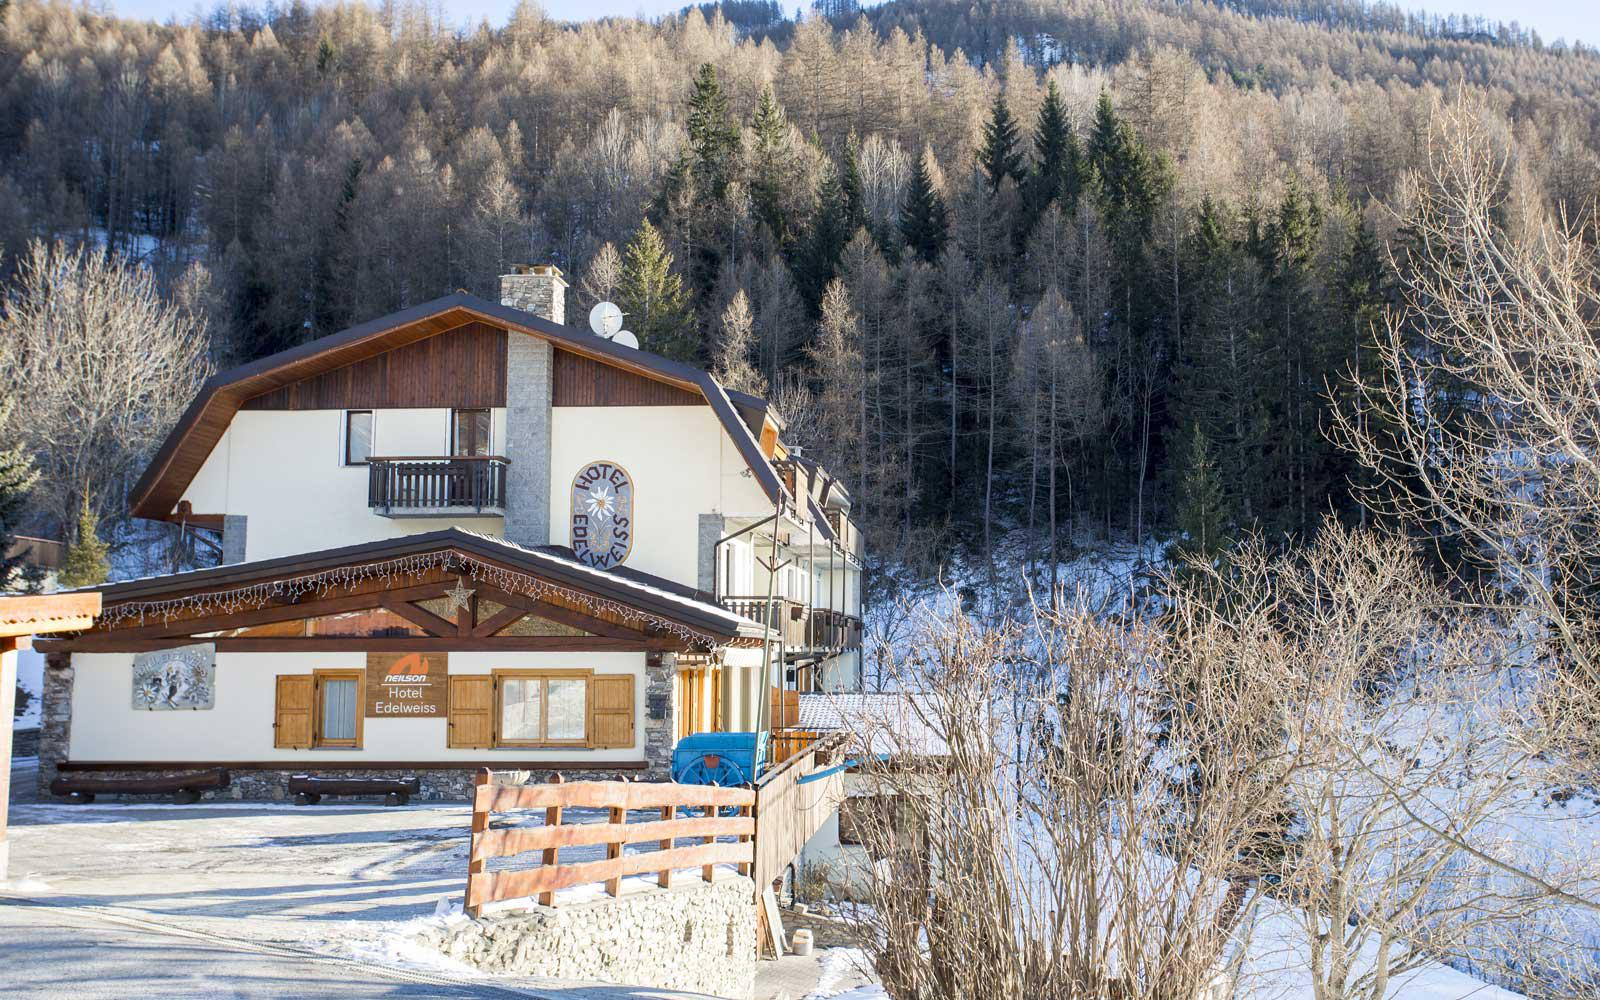 Hotel Edelweiss | Cheap Ski Holidays to Hotel Edelweiss, Sauze D\'oulx